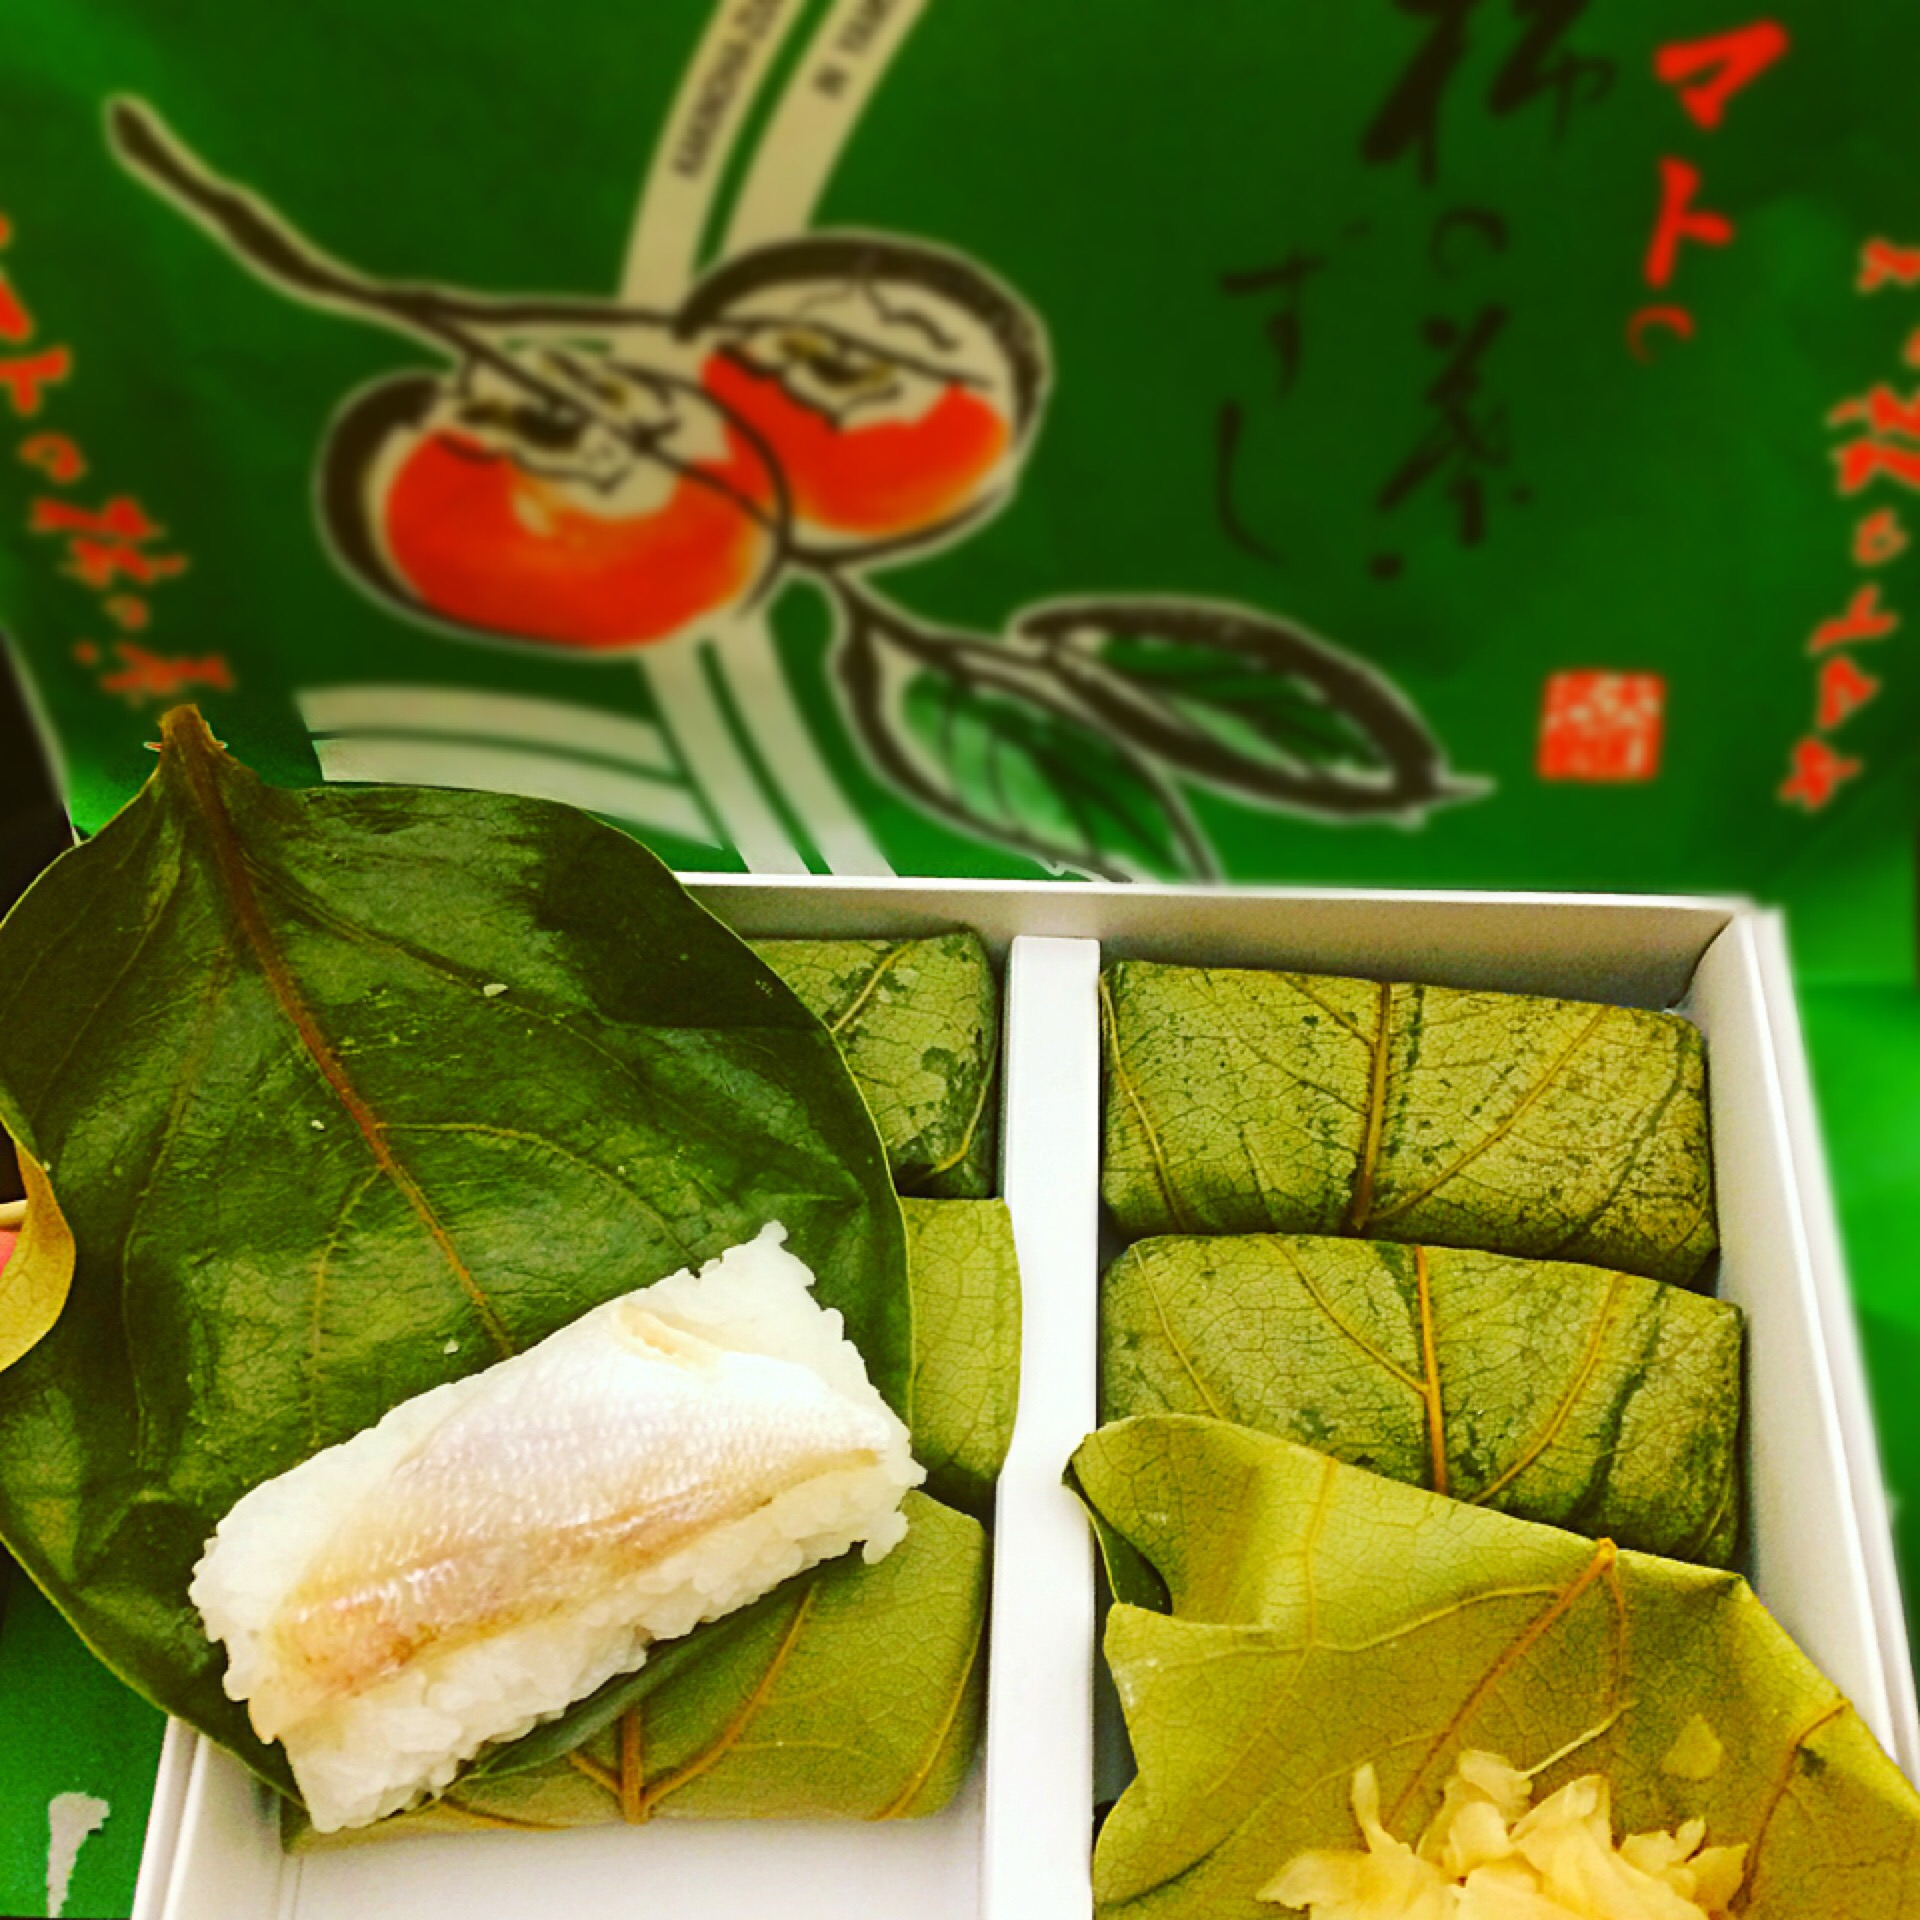 柿の葉寿司@歌舞伎座 /Kakinoha-Zushi...Sushi Wrapped in Persimmon Leaf@KABUKIZA